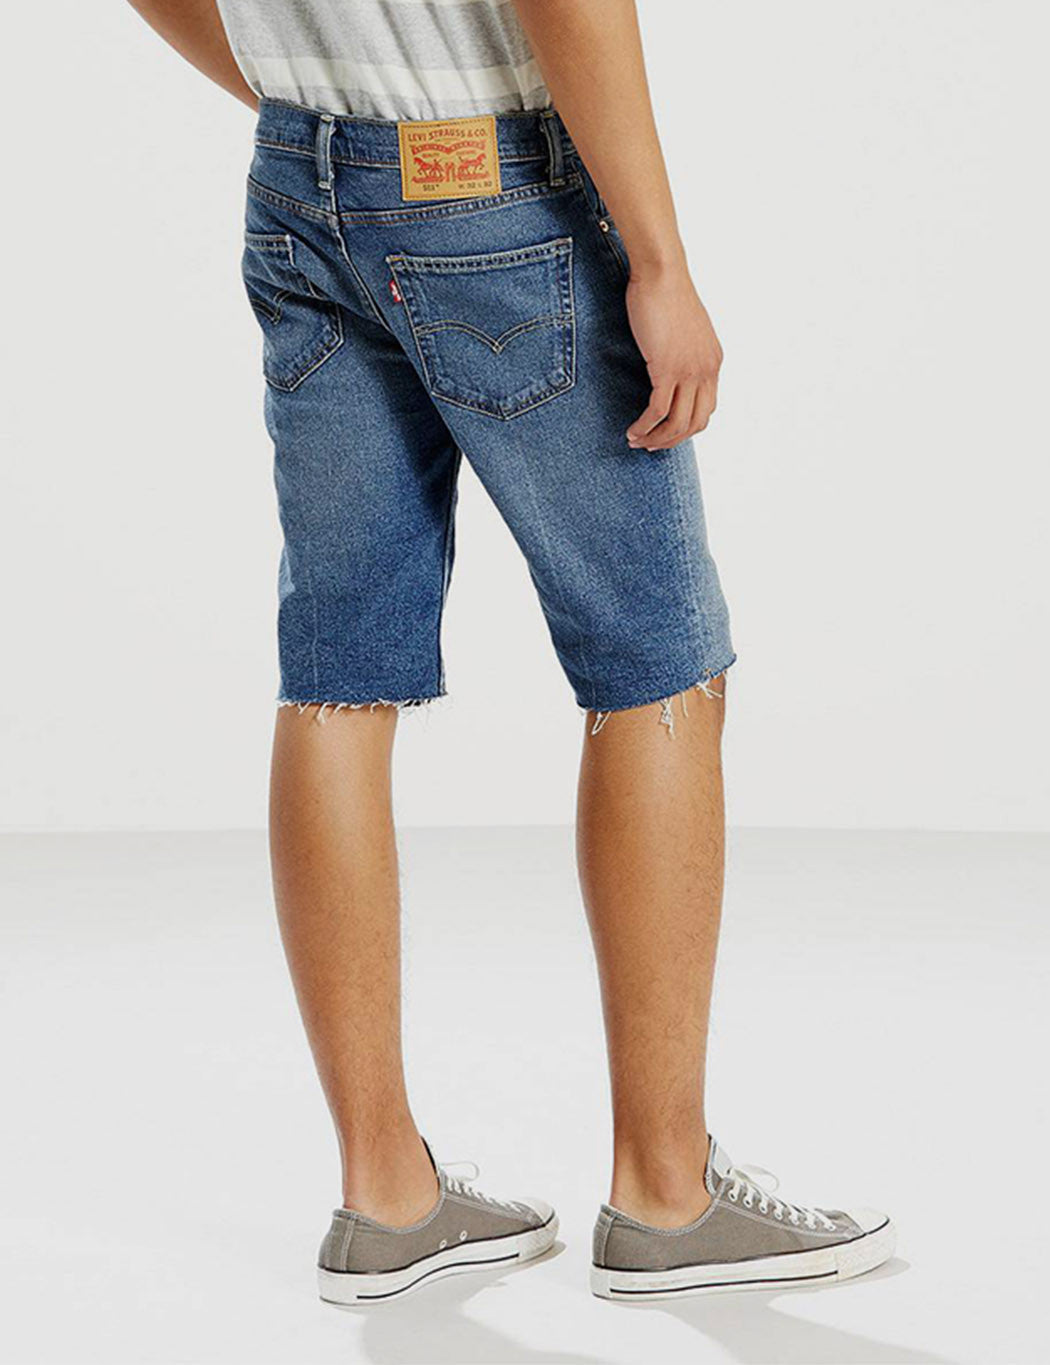 Levis 511 Denim Cut-Off Shorts (Slim) - Castro